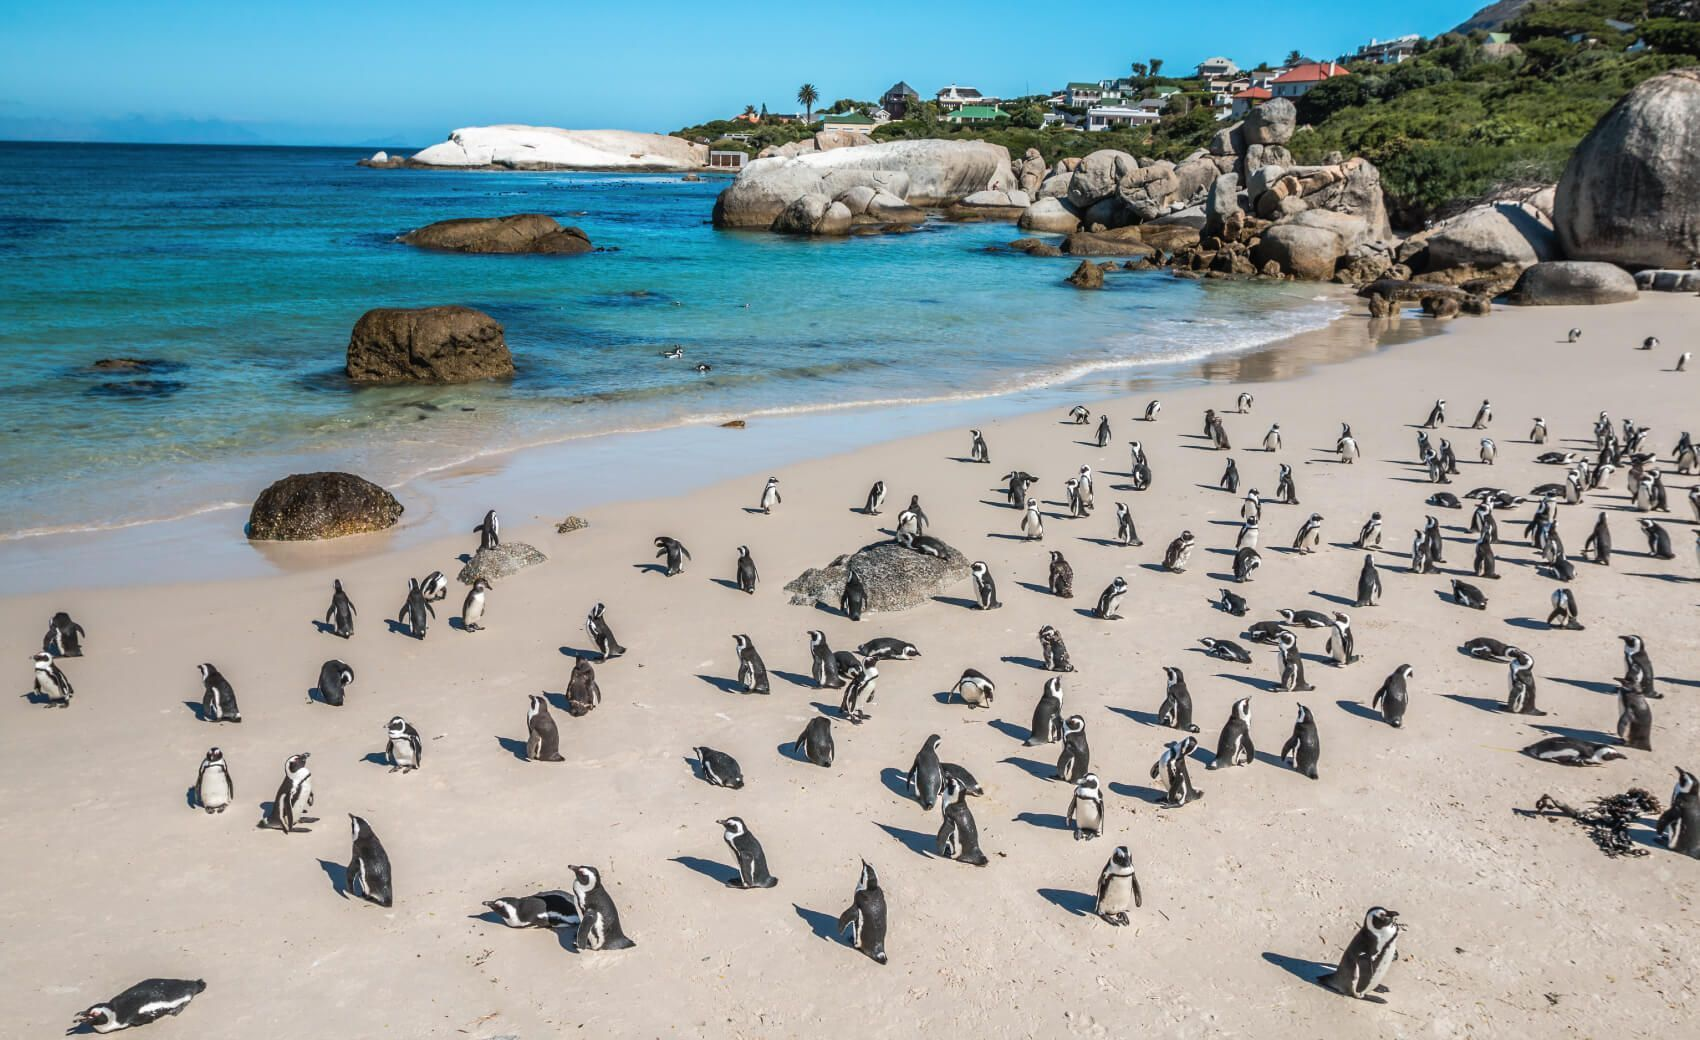 Penguin Colony - Boulders Beach, Cape Town, South Africa